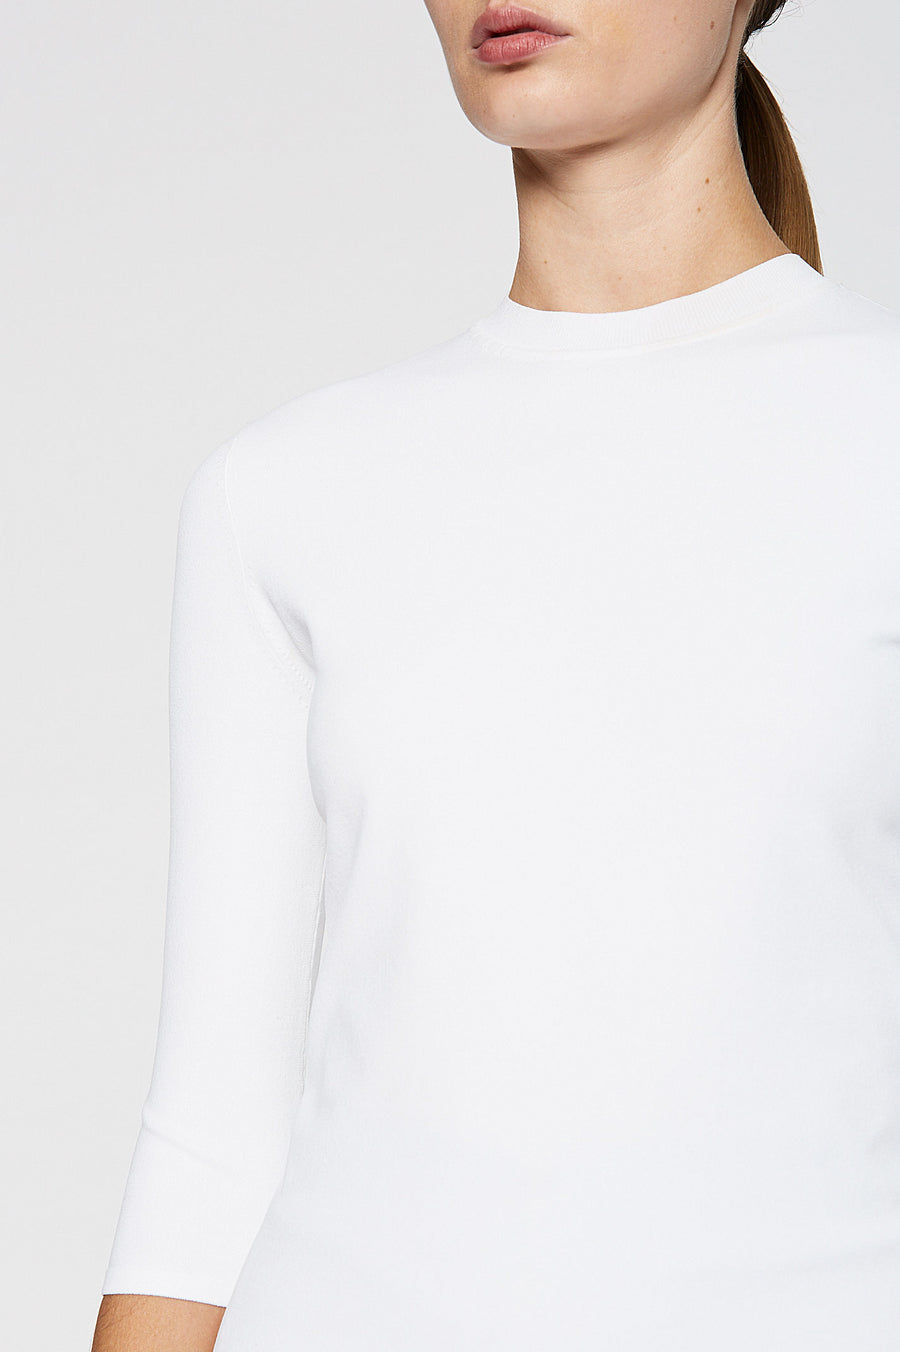 ANGEL CREW NECK SWEATER 18, WHITE color